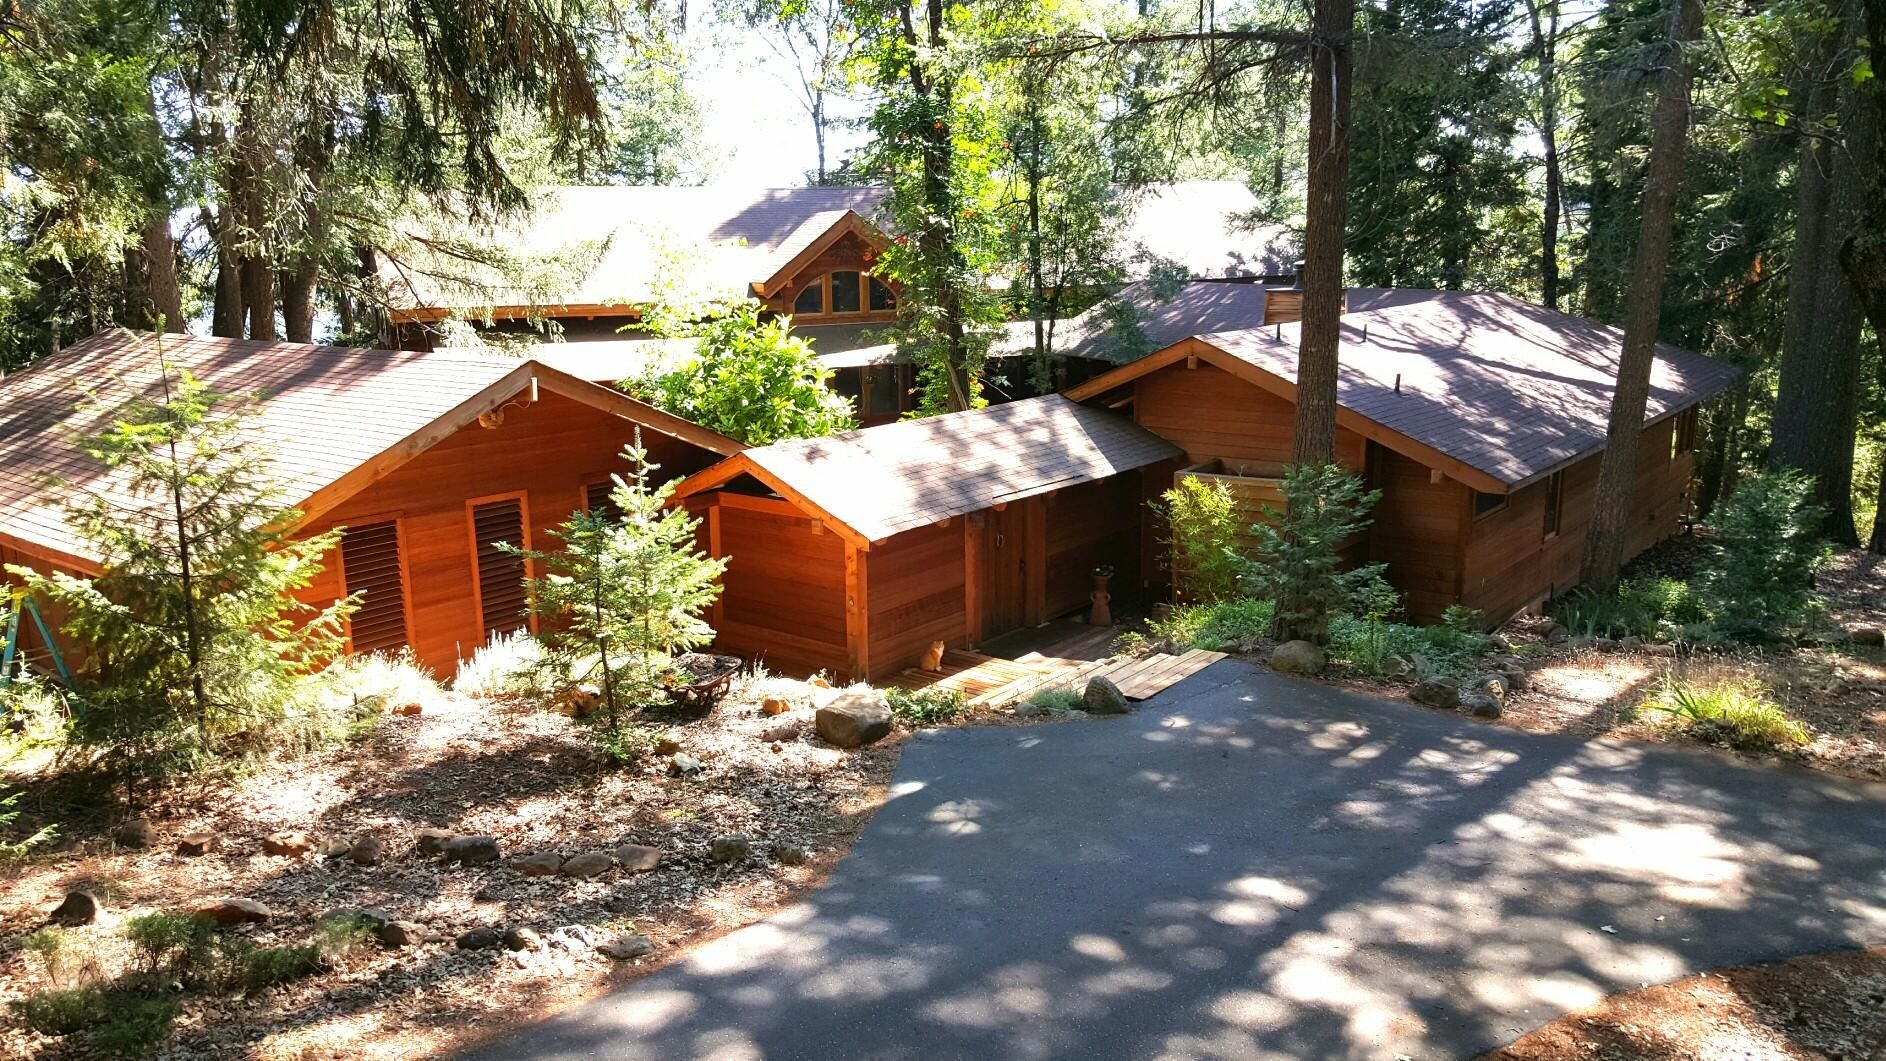 Tahoe Forest Setting with lake views.  This is an extraordinary experience of serenity & luxury.  Located 1/2 hr from ski slopes and 7 min. from town. http://www.tourfactory.com/1406710/r_Pin NC $1,300,000